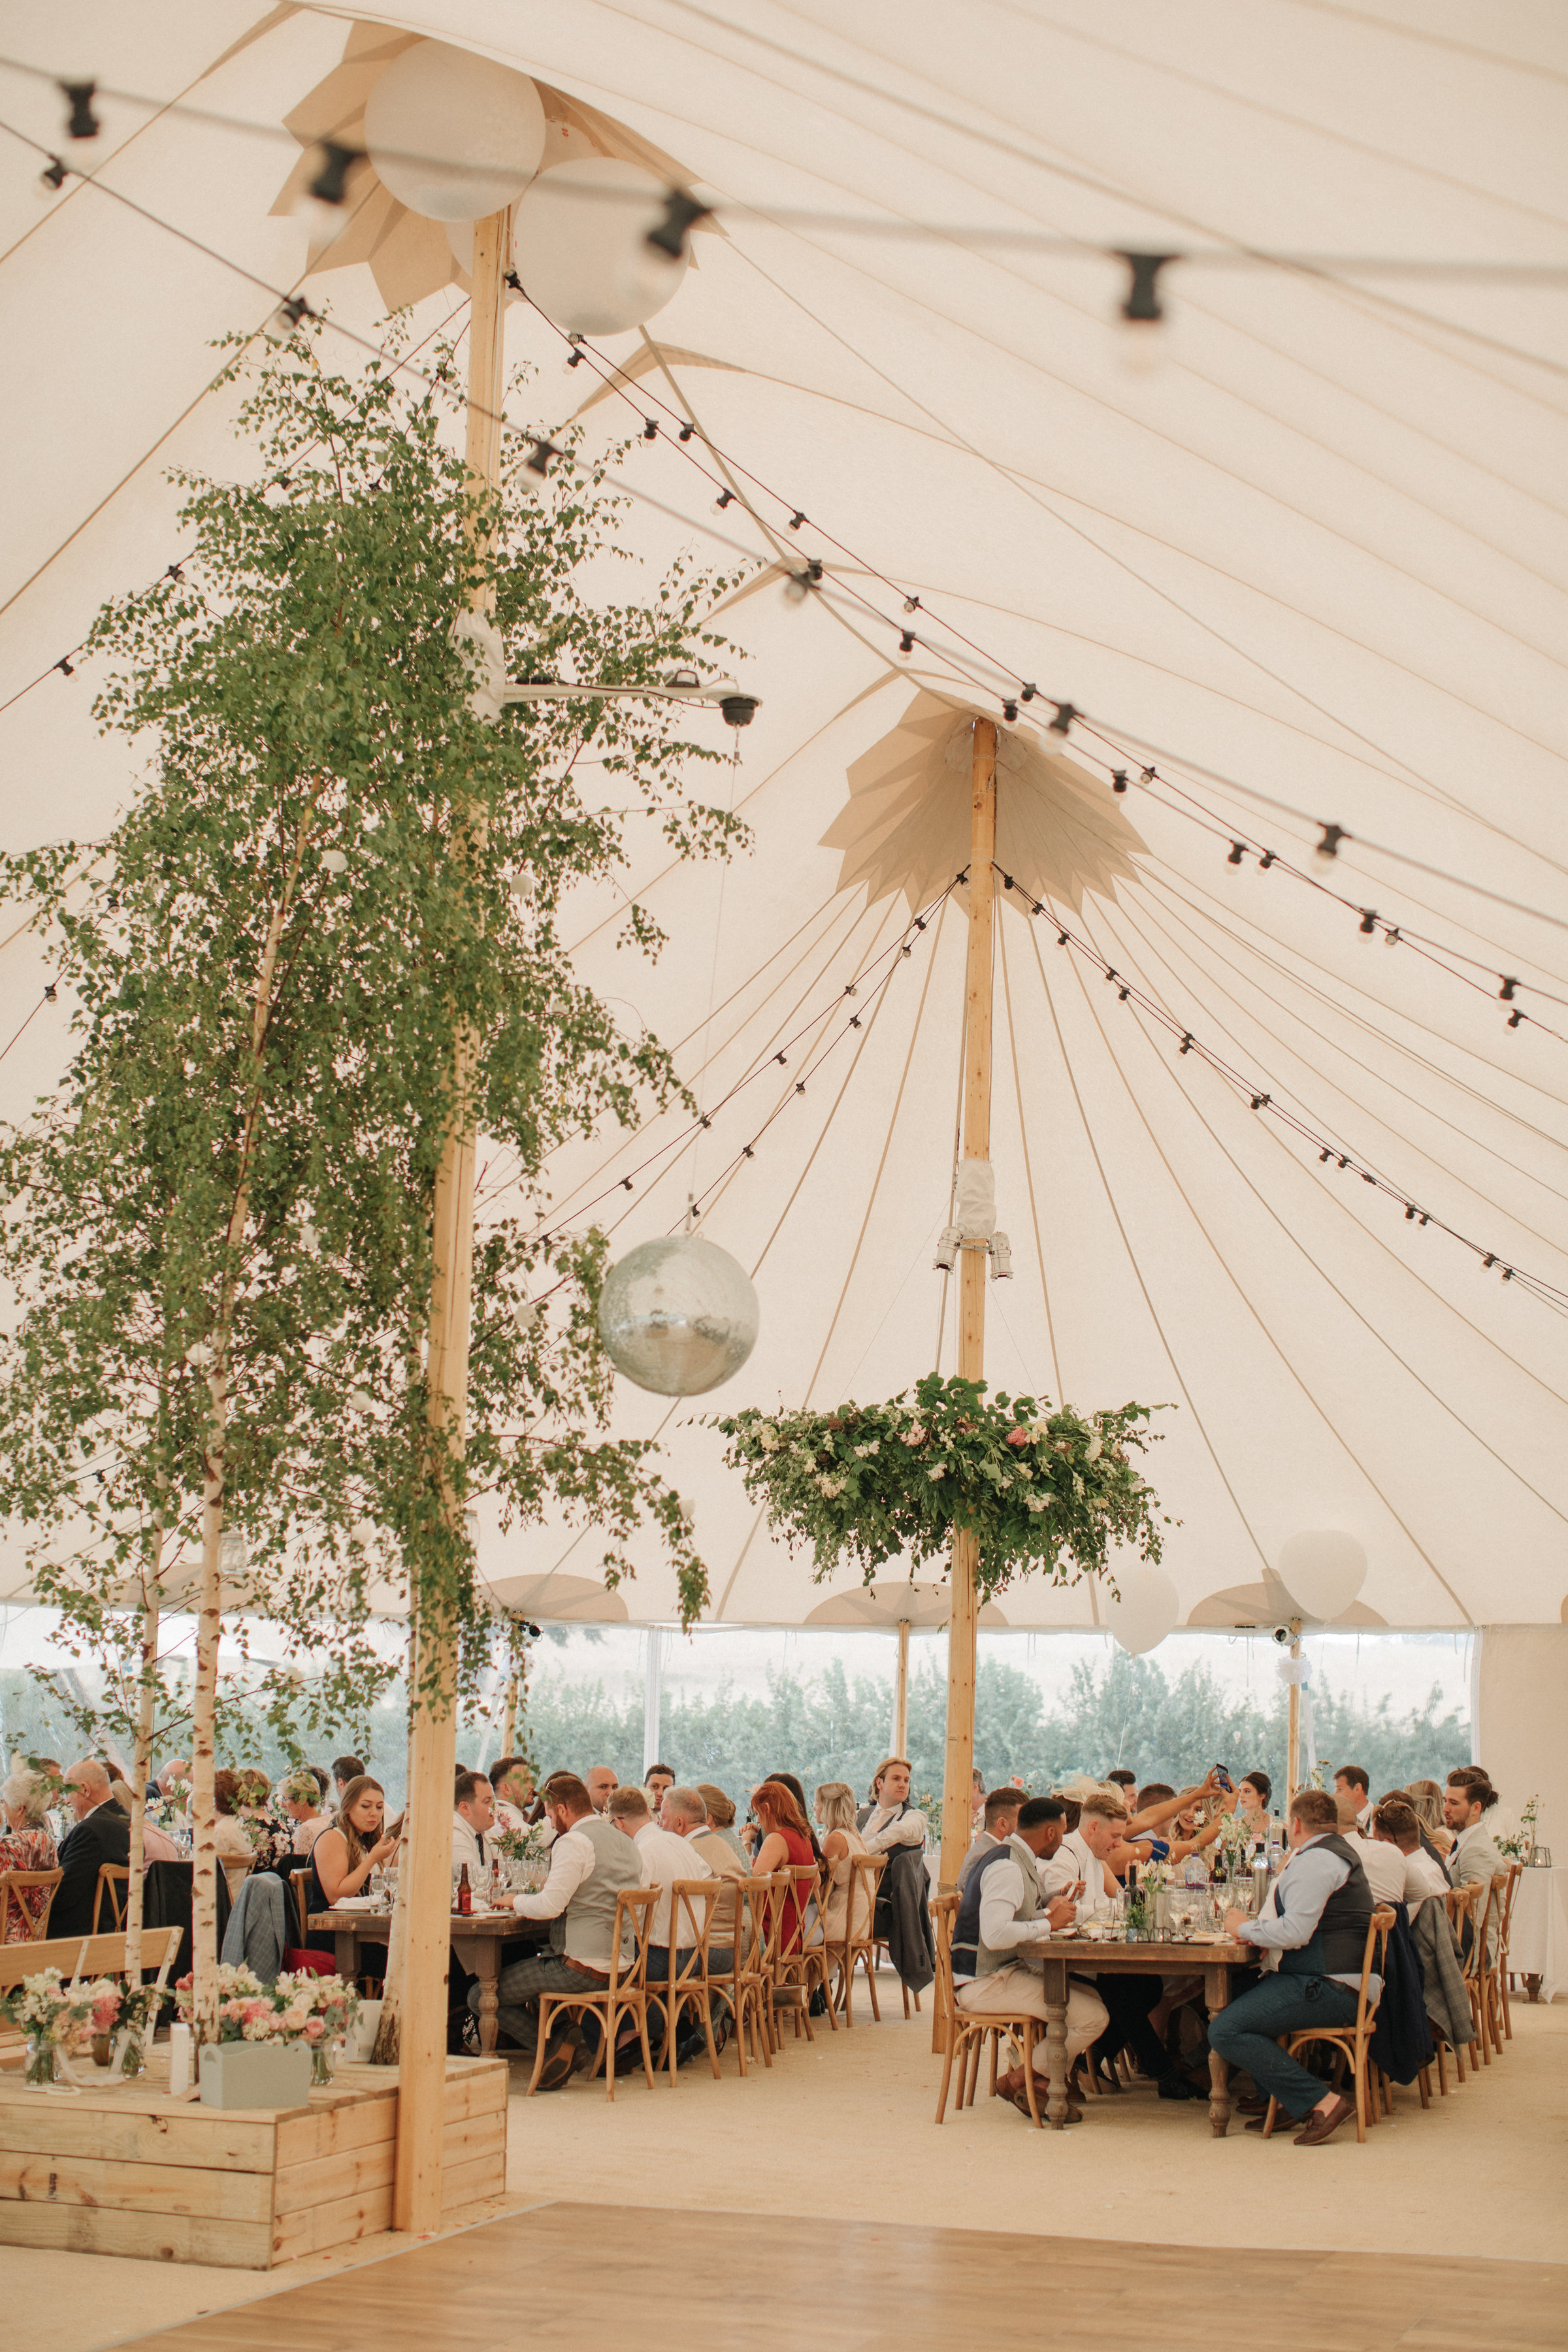 Steph & Ed's PapaKåta Sperry Tent wedding at home in Nottingham captured by M & J Photography: Wedding Guests